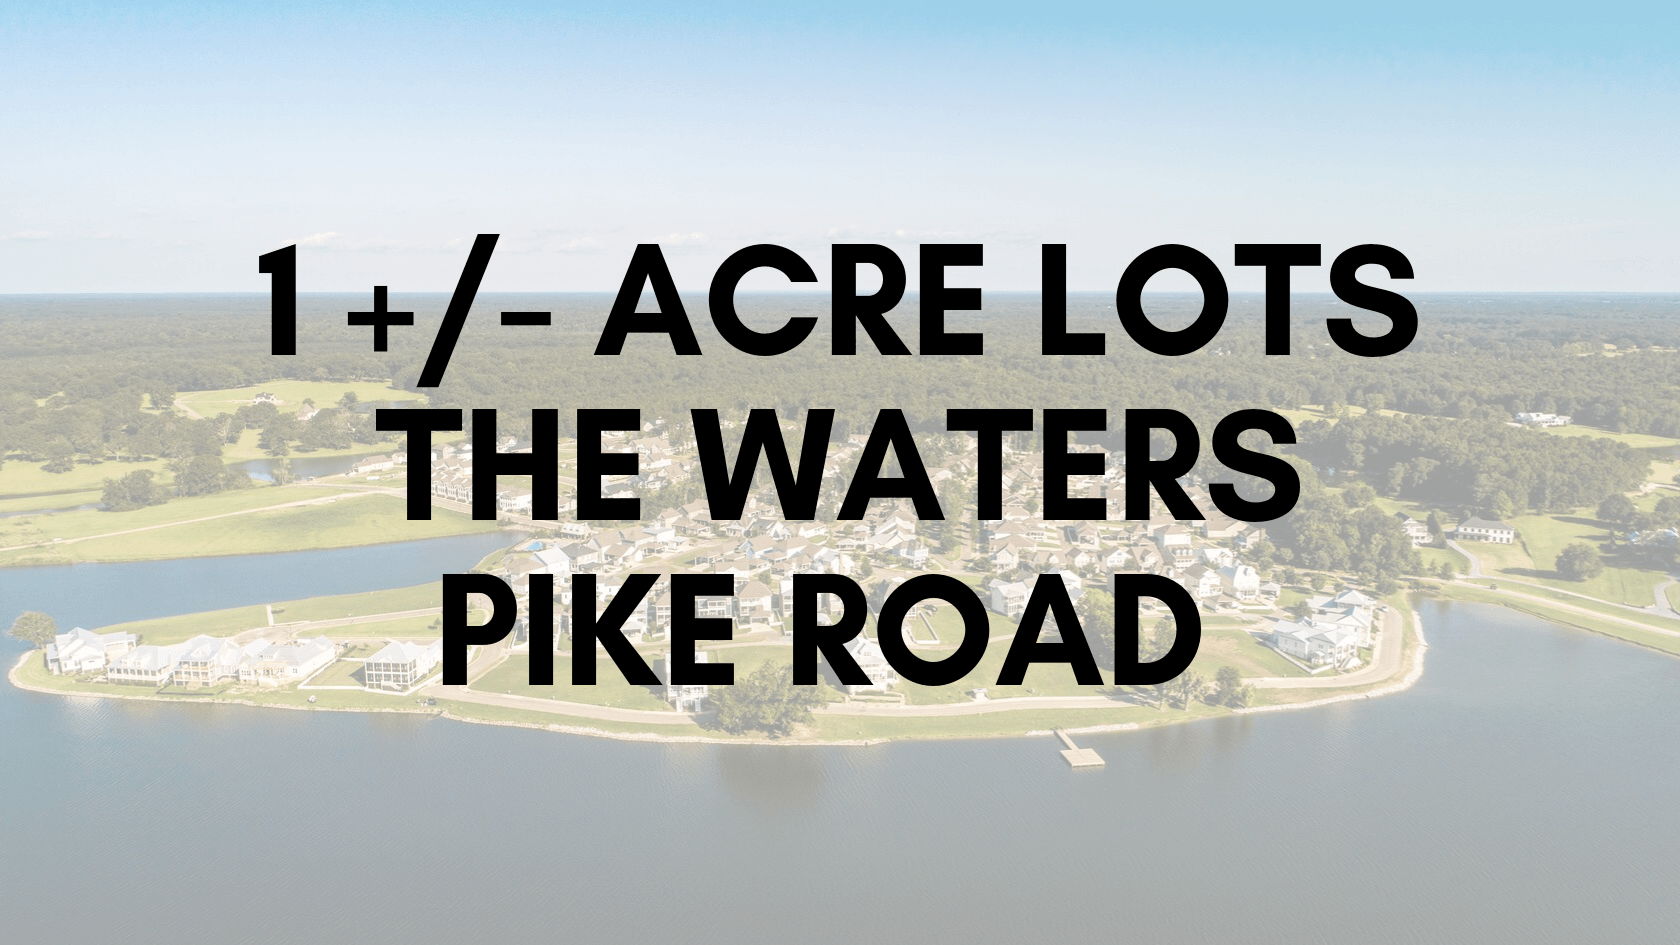 1 +/- Acre Lots at The Waters in Pike Road